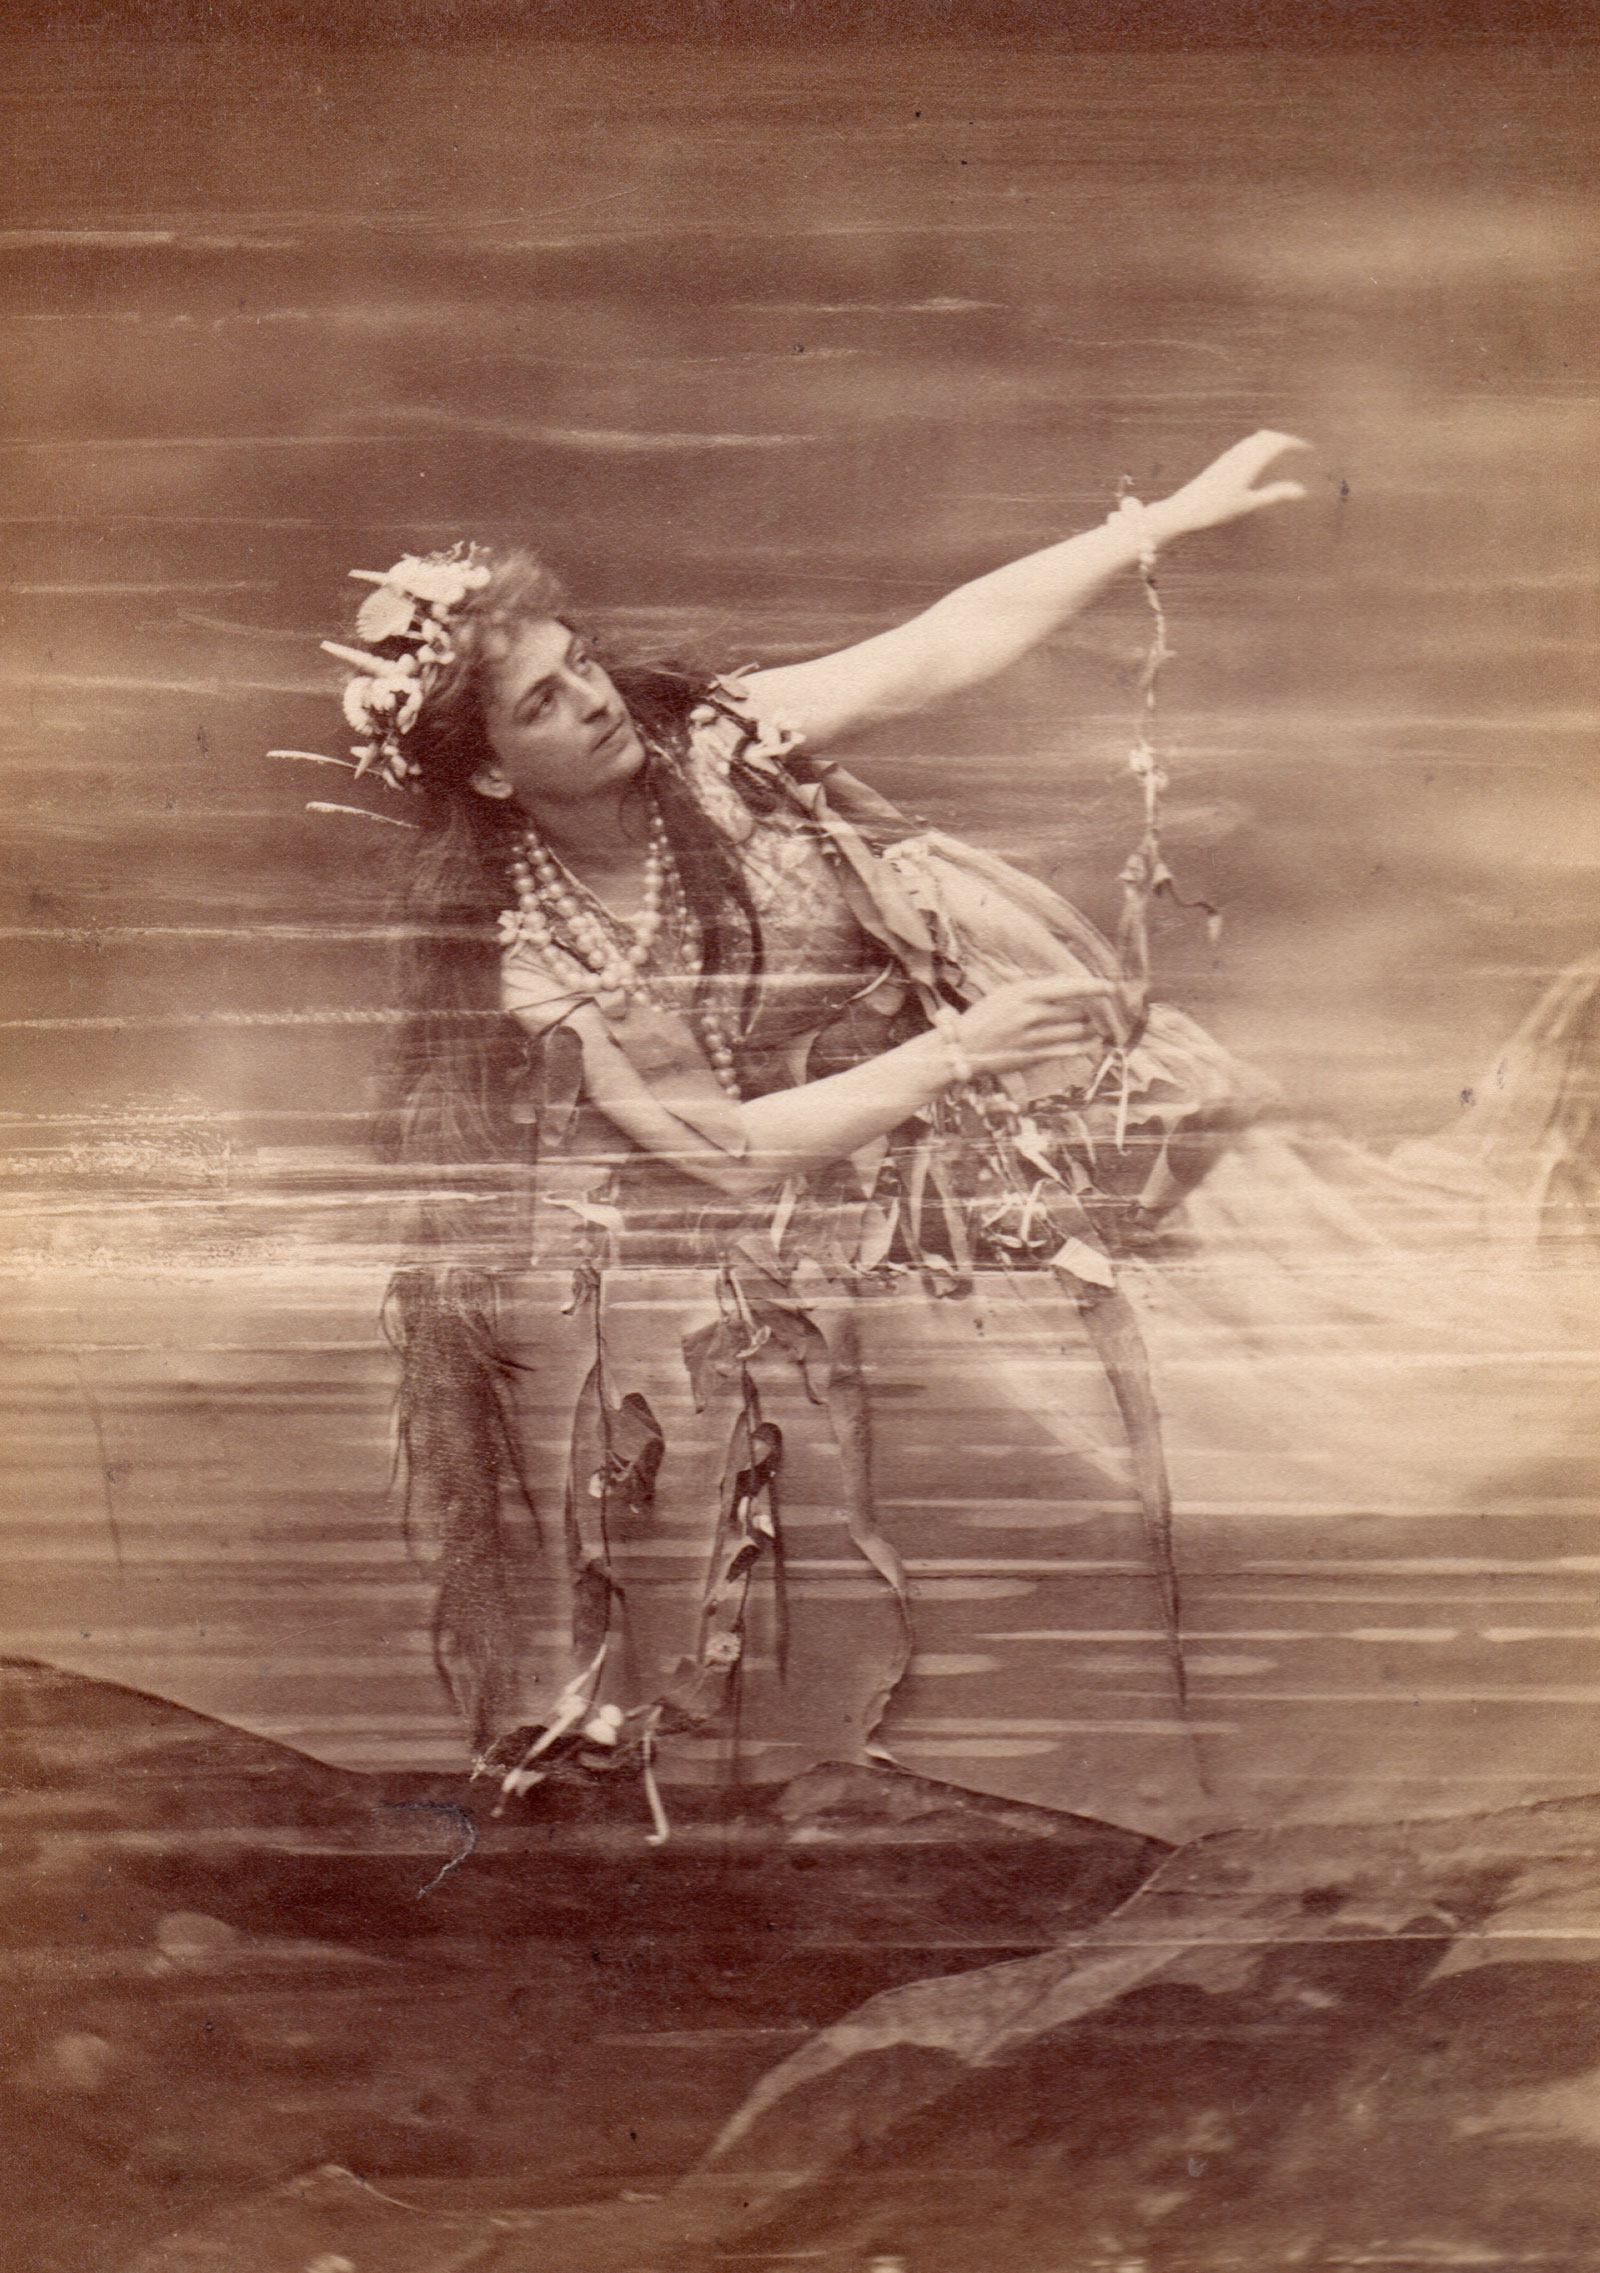 Lilli Lehmann as Woglinde in Das Rheingold, Bayreuth production, 1876